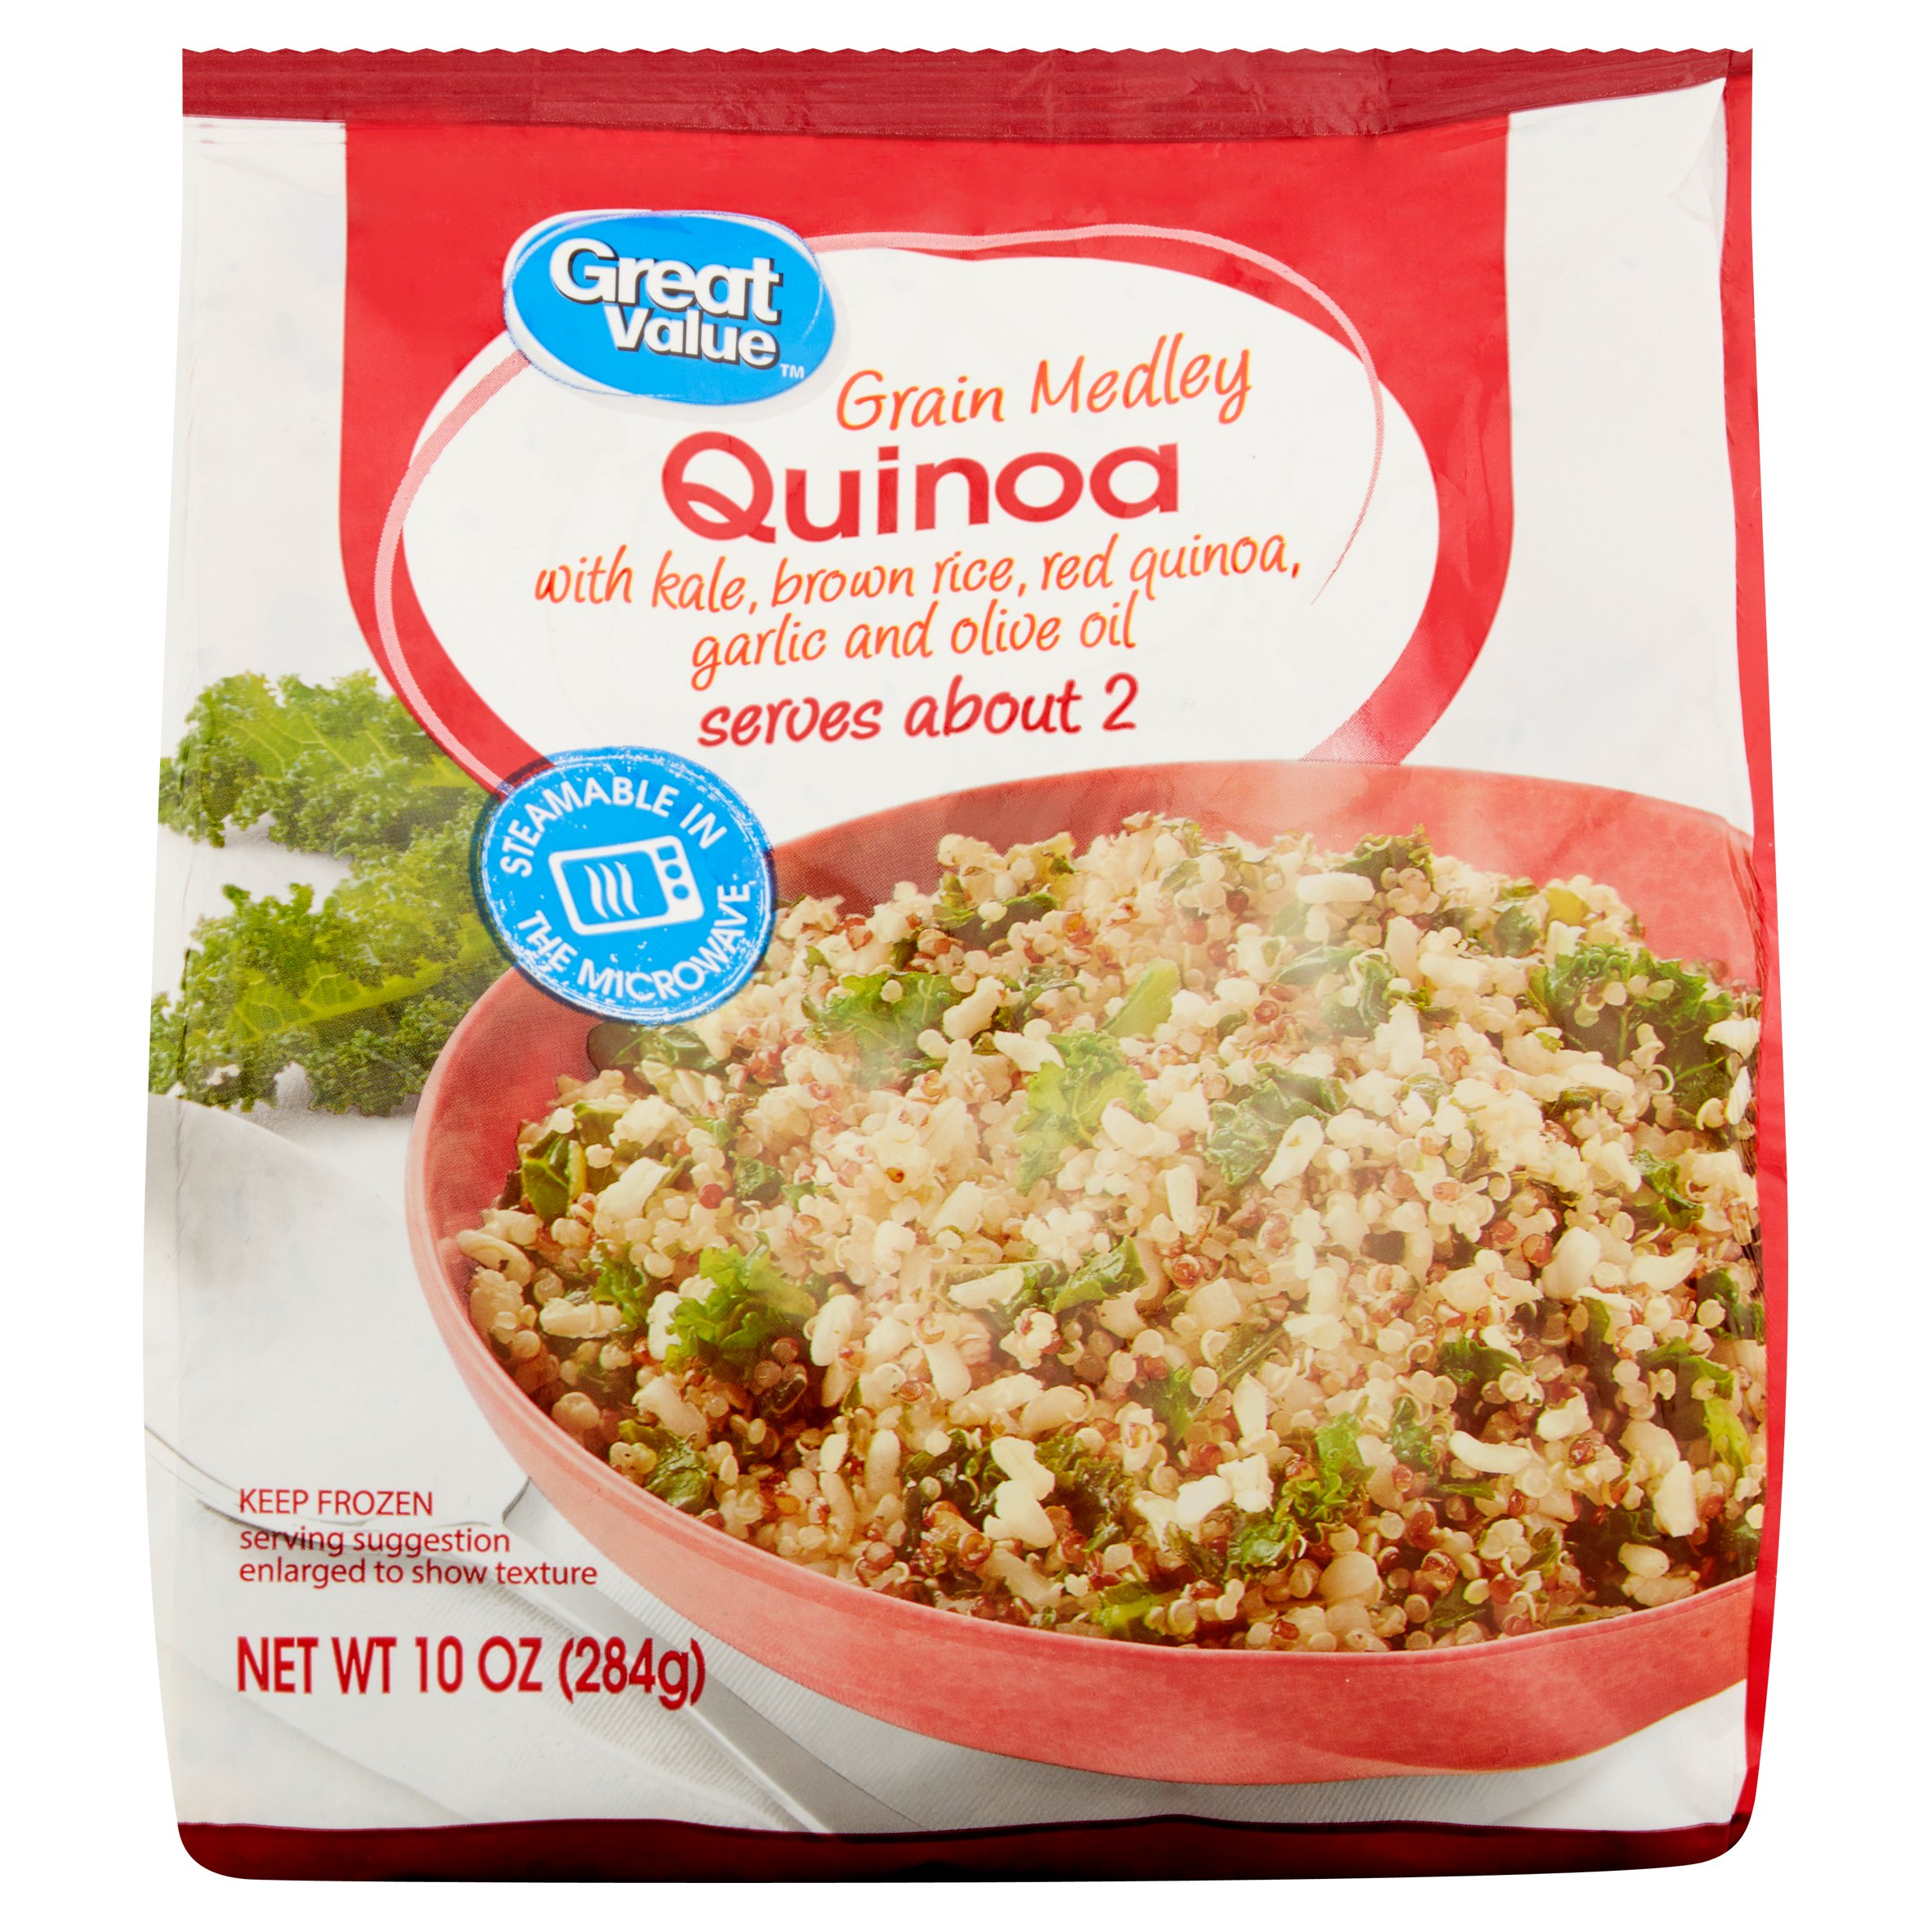 Great Value Grain Medley Quinoa with Kale, Brown Rice, Red Quinoa, Garlic and Olive Oil, 10 oz